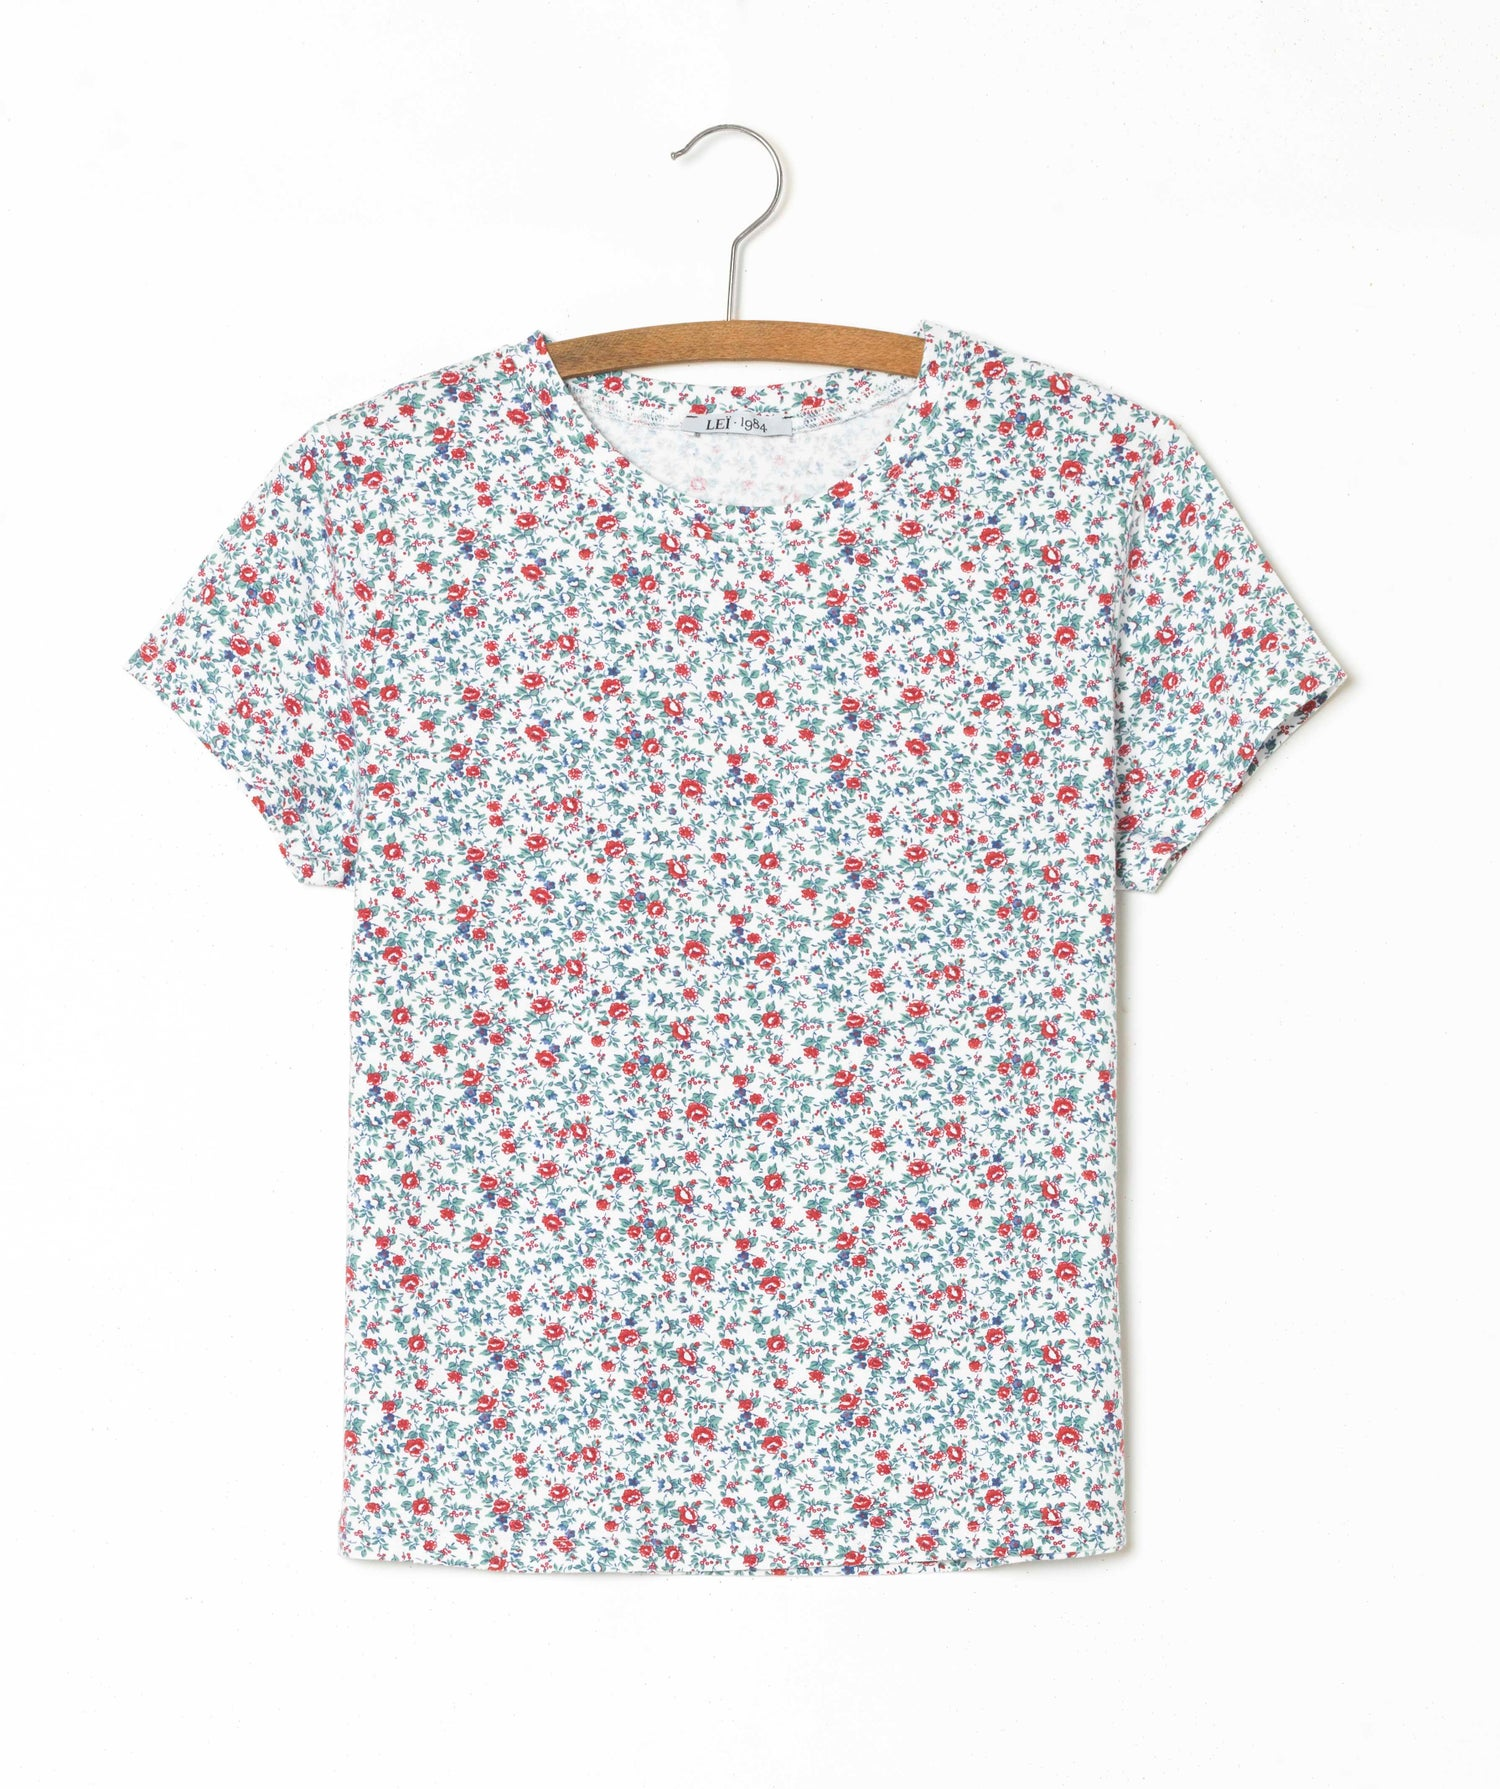 Image of Tee-shirt PRUNE imprimé liberty 55€ -60%